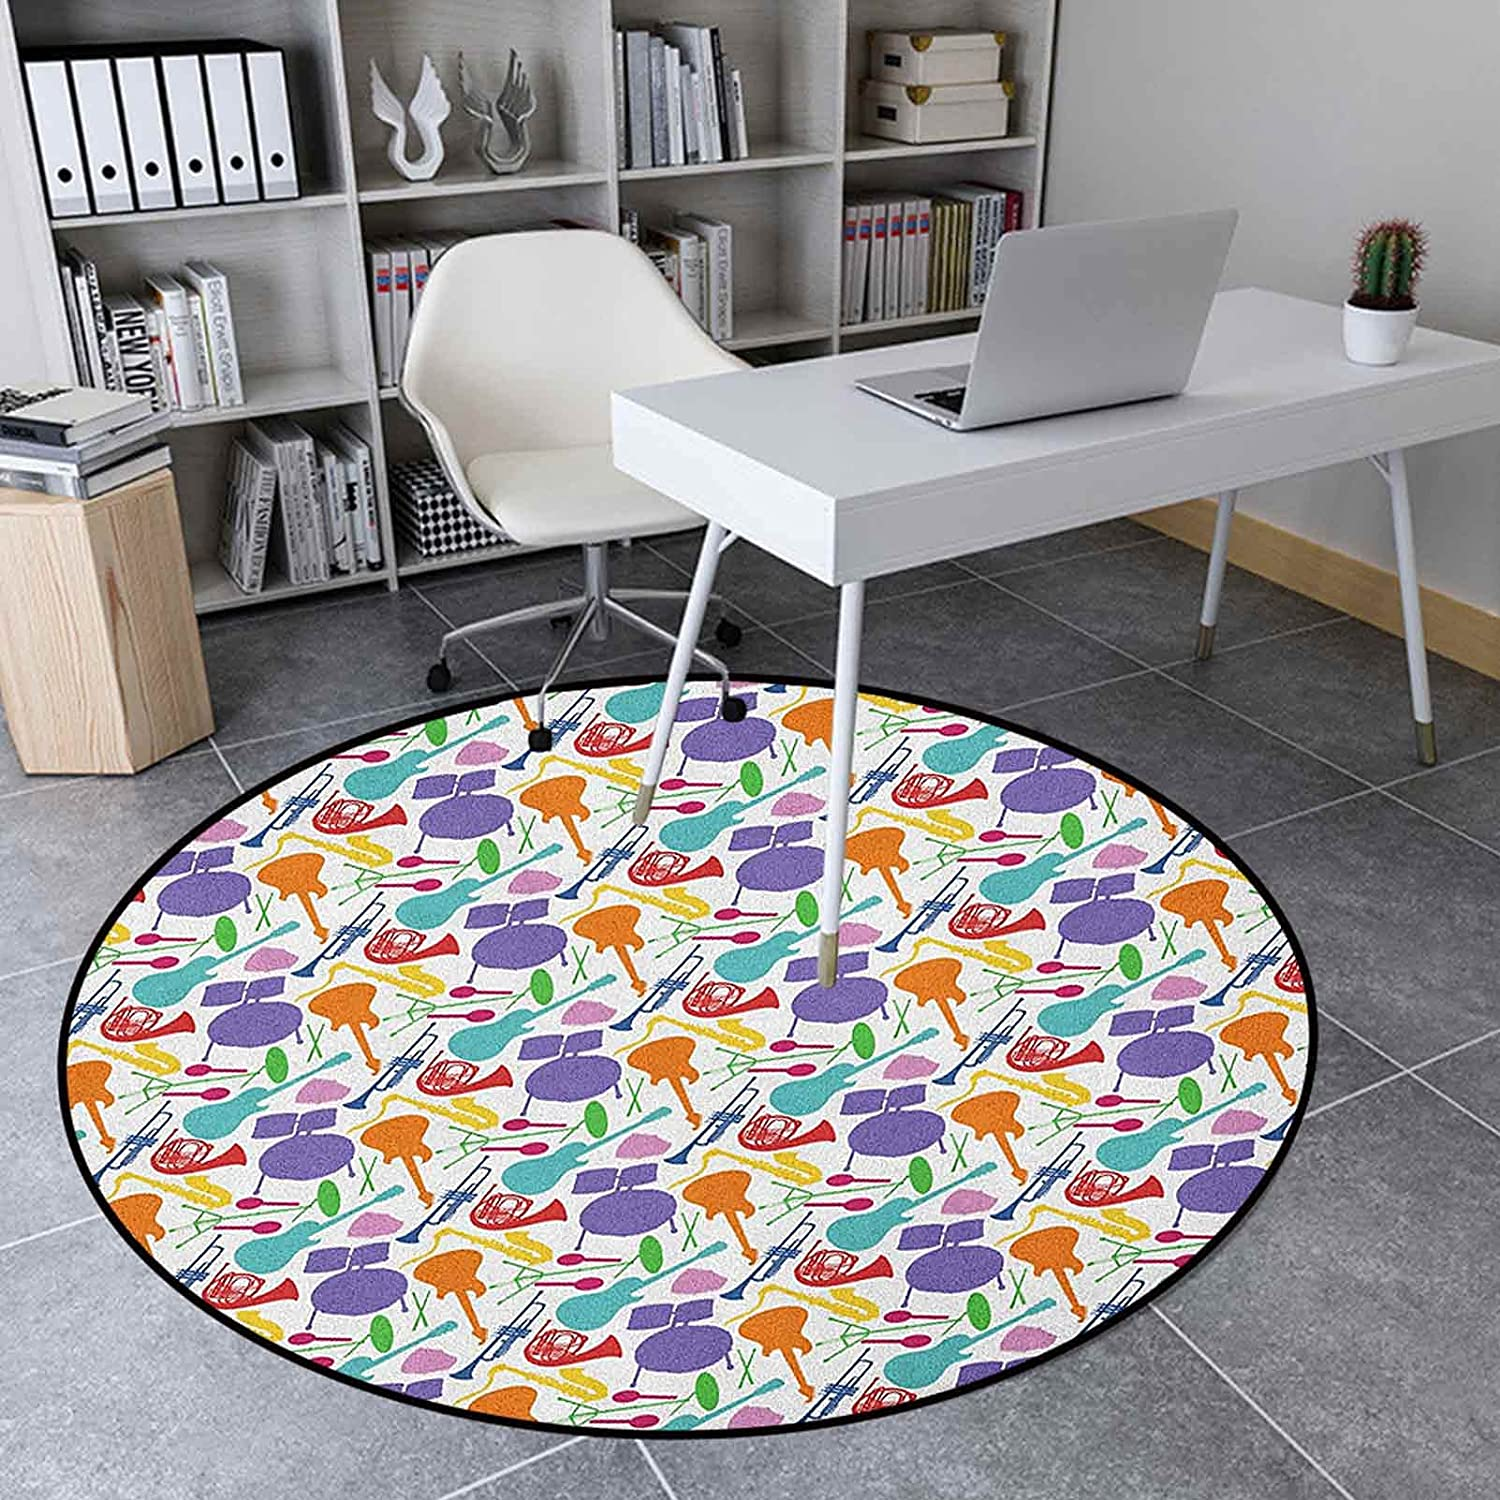 Music Collection Round Rug 4.3 Bedroom Carpet Regular dealer Inches Milwaukee Mall Ft for